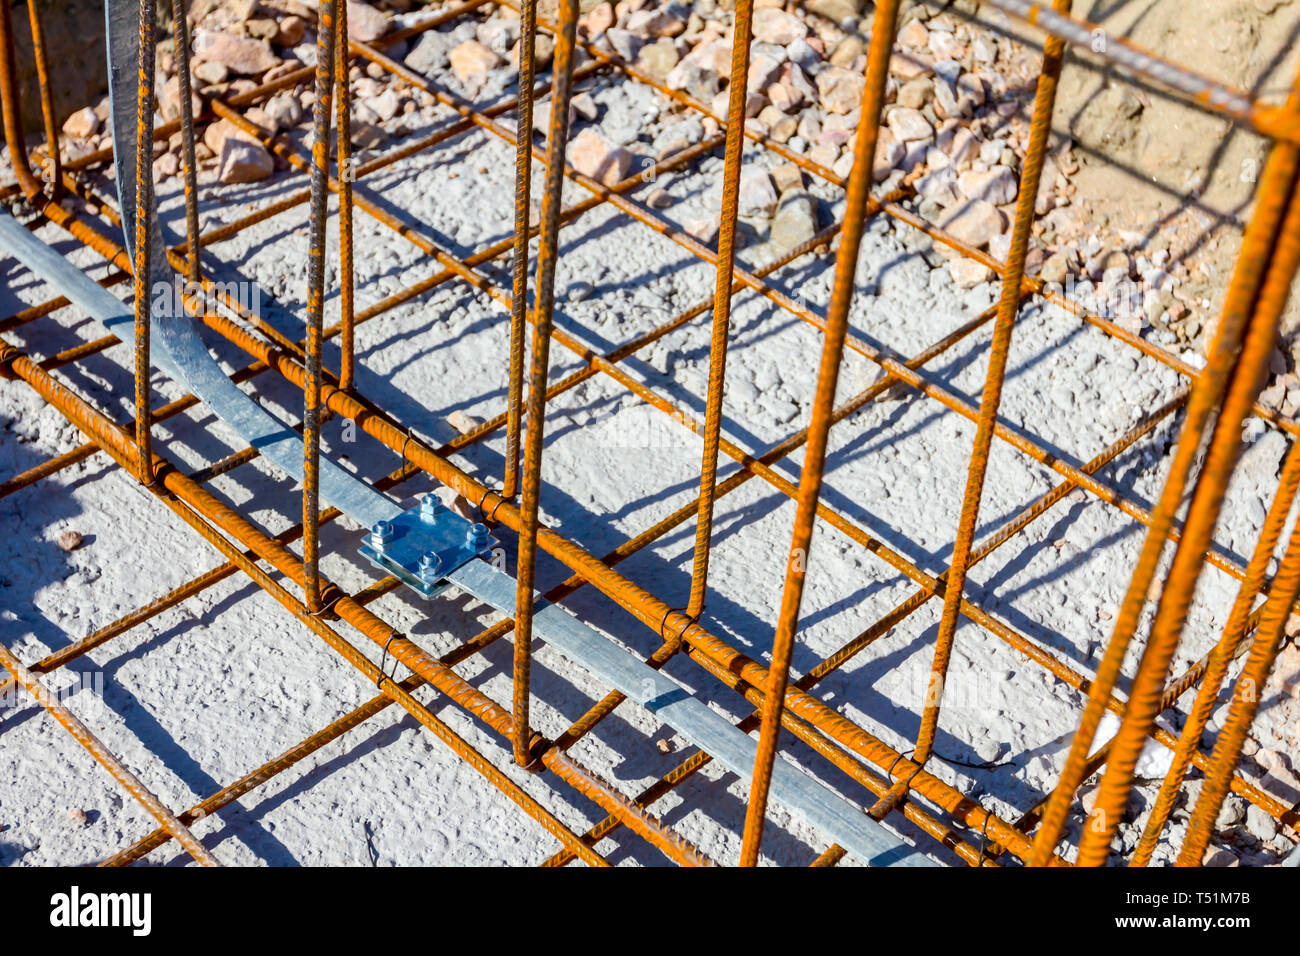 Under construction lightning conductor system as a part of basic metal profile made of bended and tied reinforcing rod for industrial building. - Stock Image